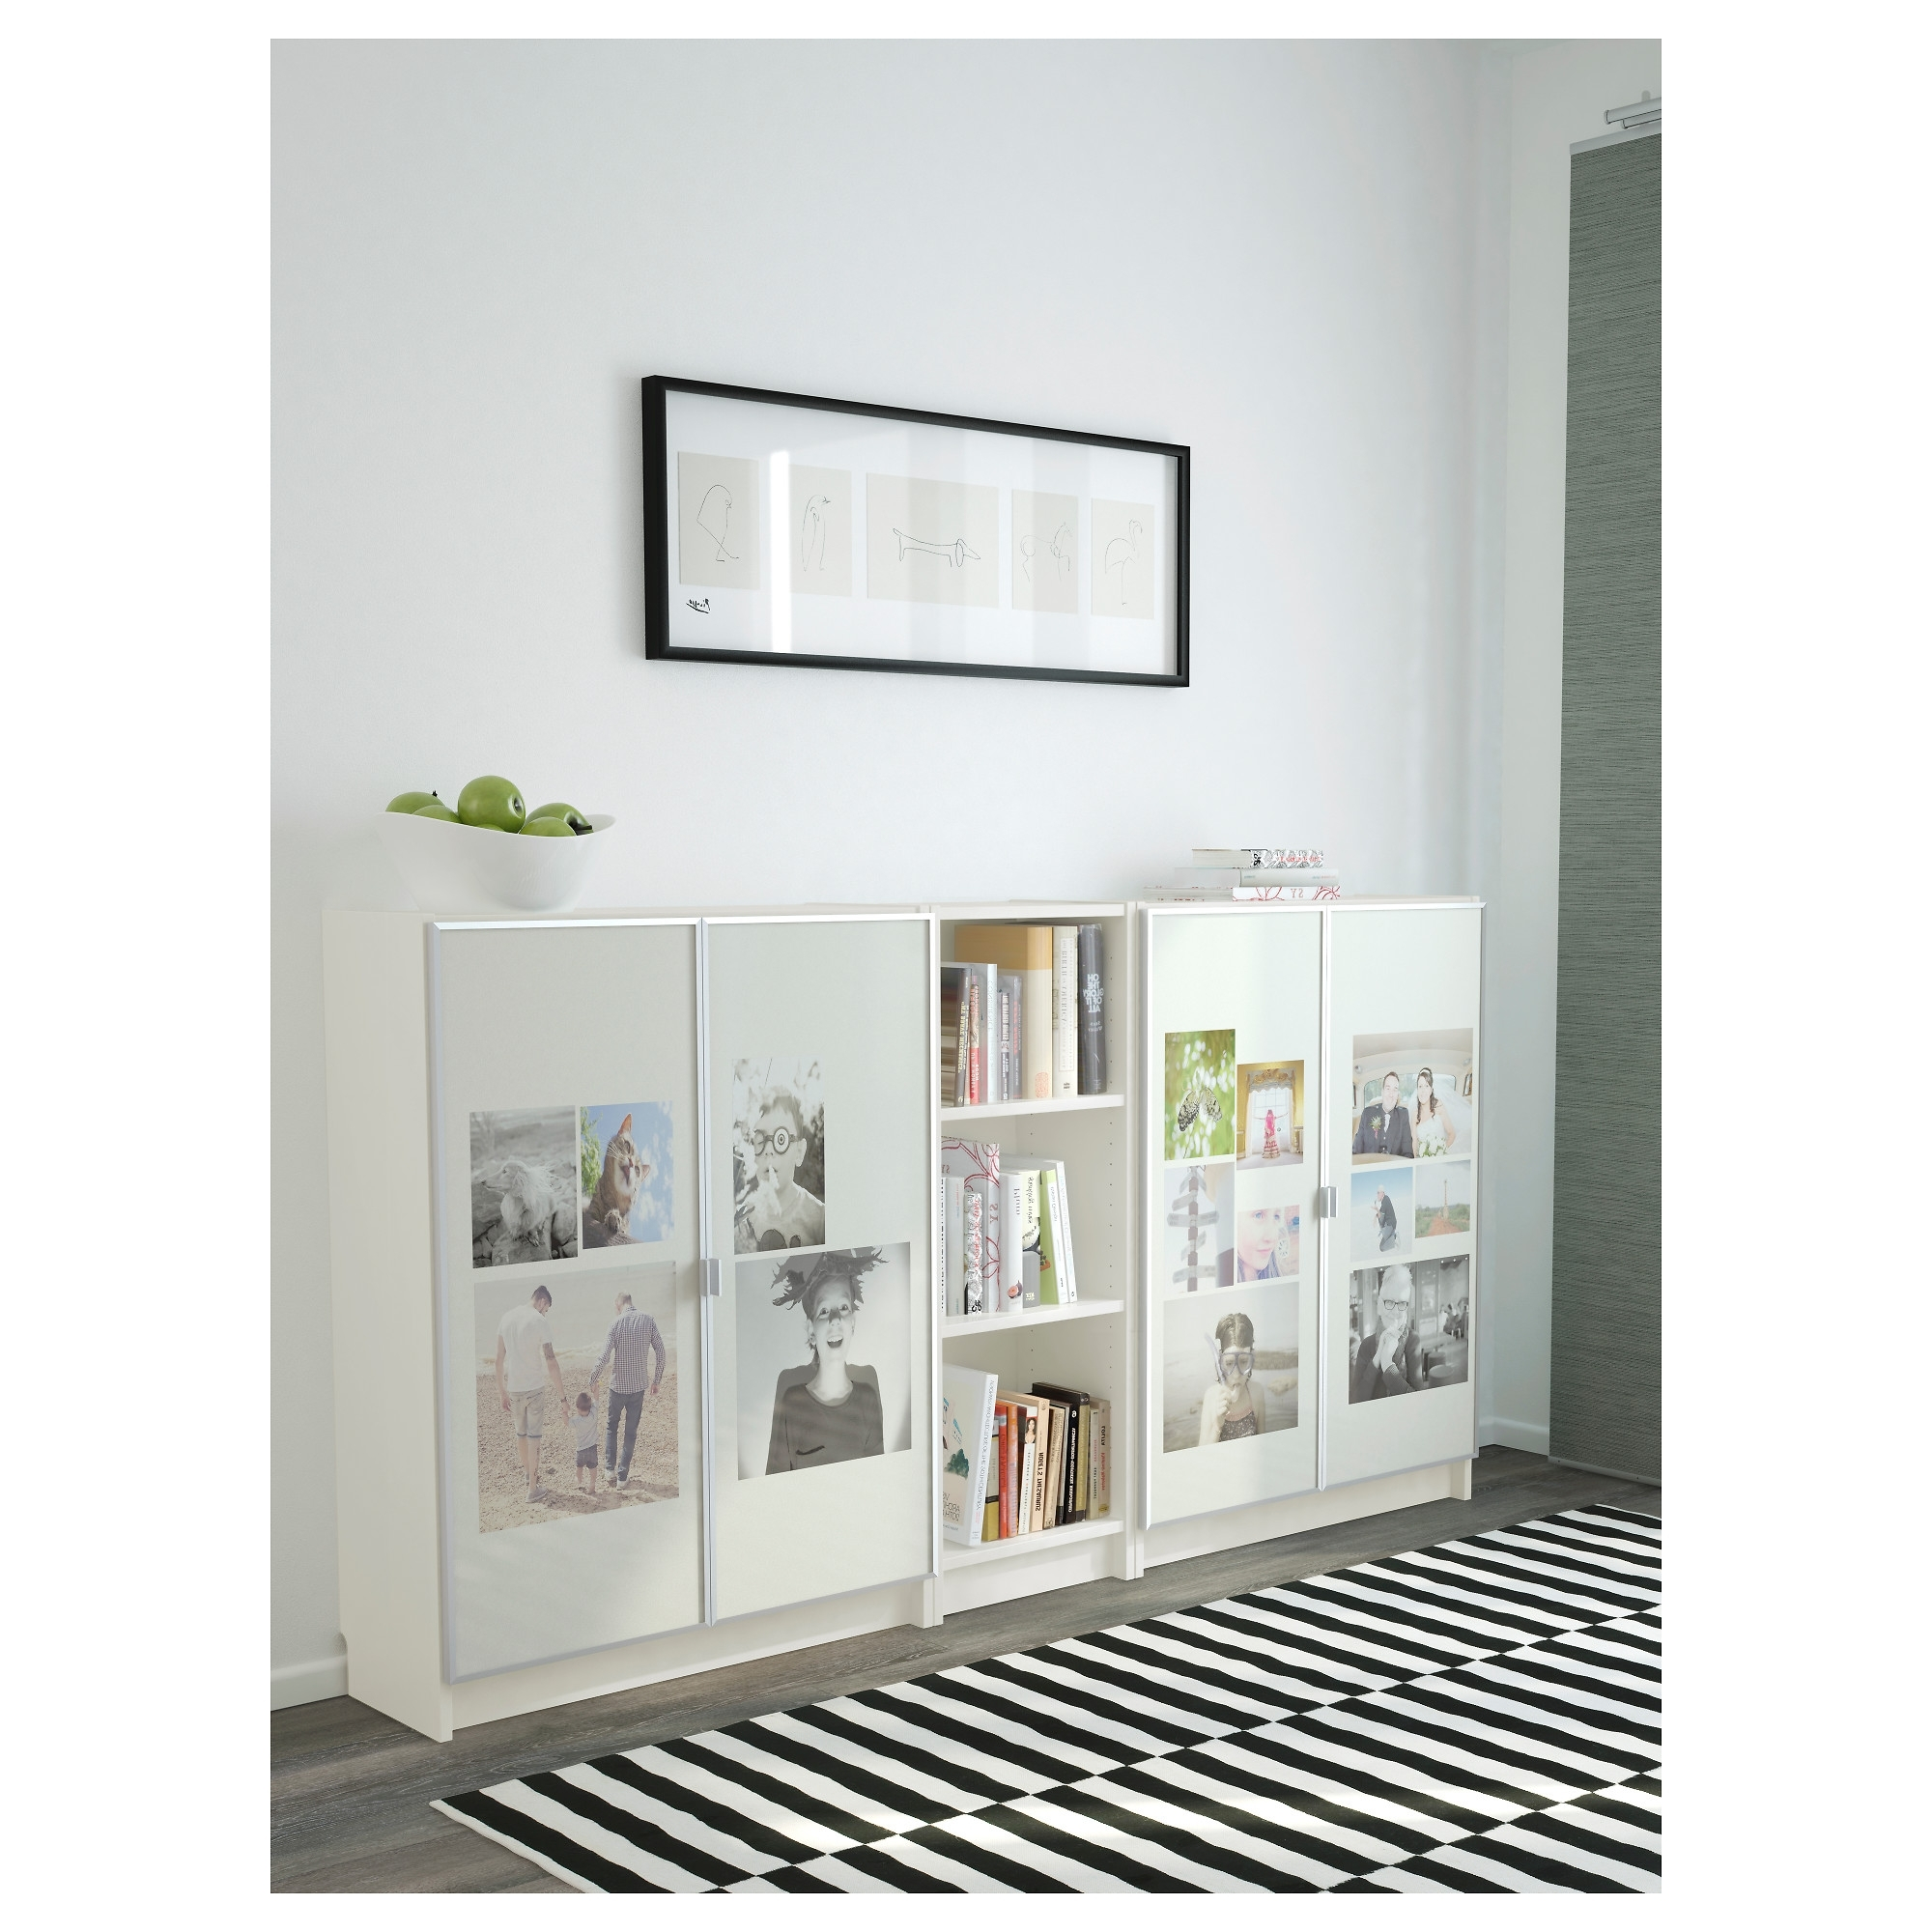 2018 Ikea Billy Bookcases Intended For Billy / Morliden Bookcase – White – Ikea (View 2 of 15)